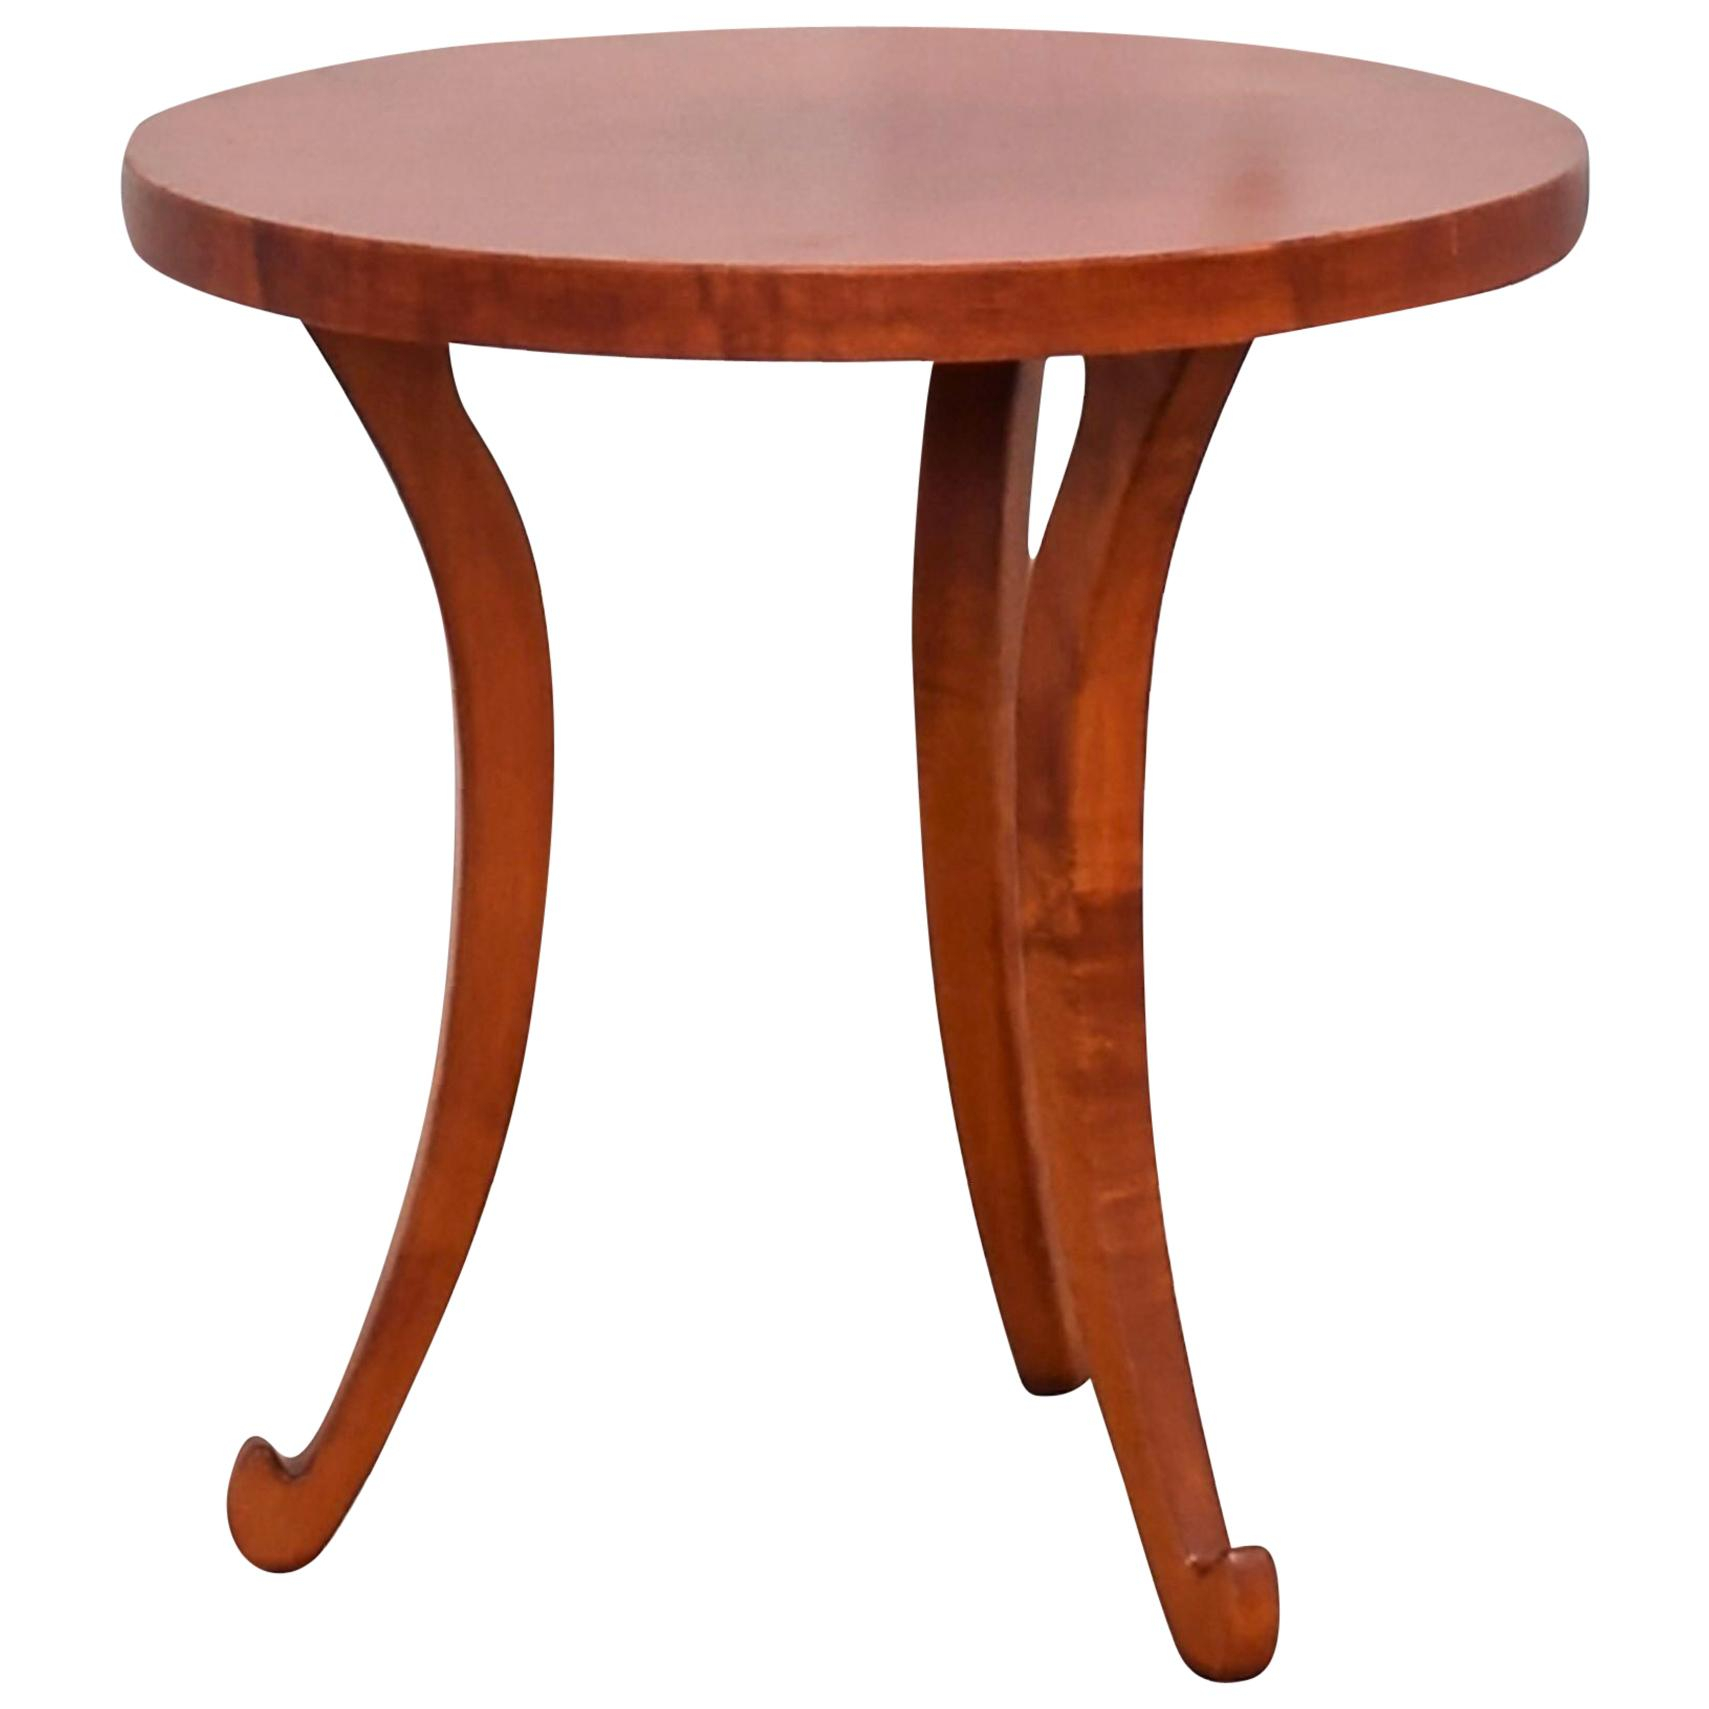 Vladimir Kagan Nesting Mahogany And Ceramic Tile Top Tables Within Recent Warner Round Pedestal Dining Tables (View 19 of 25)